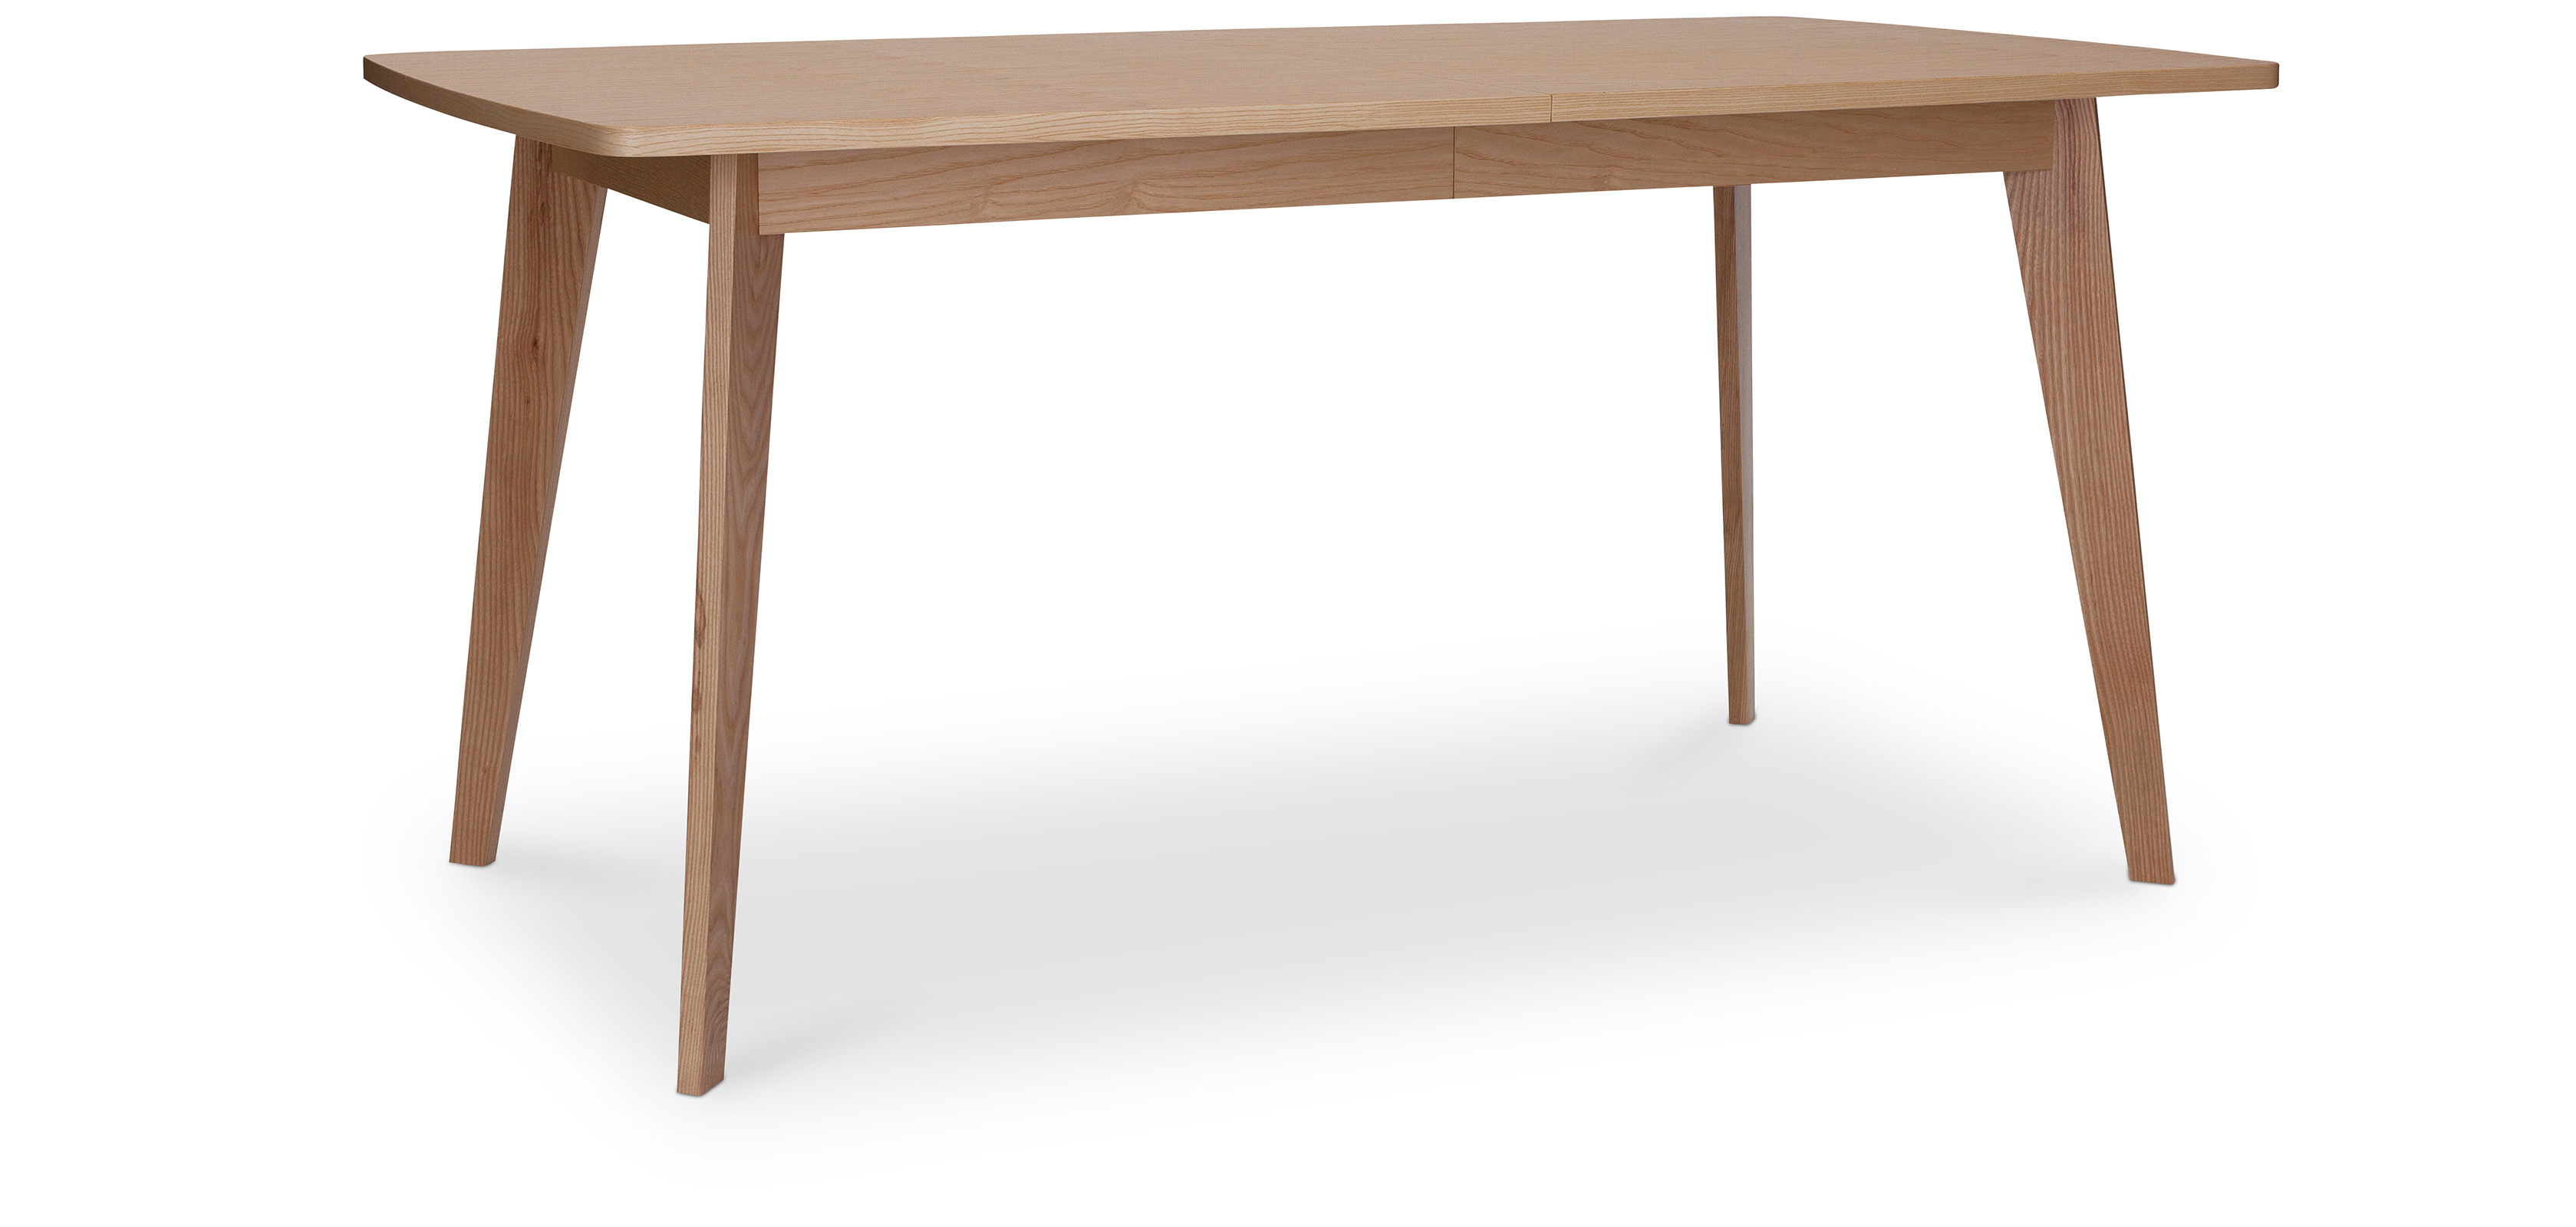 Table de salle manger ajustable en bois style scandinave for Table a manger scandinave bois